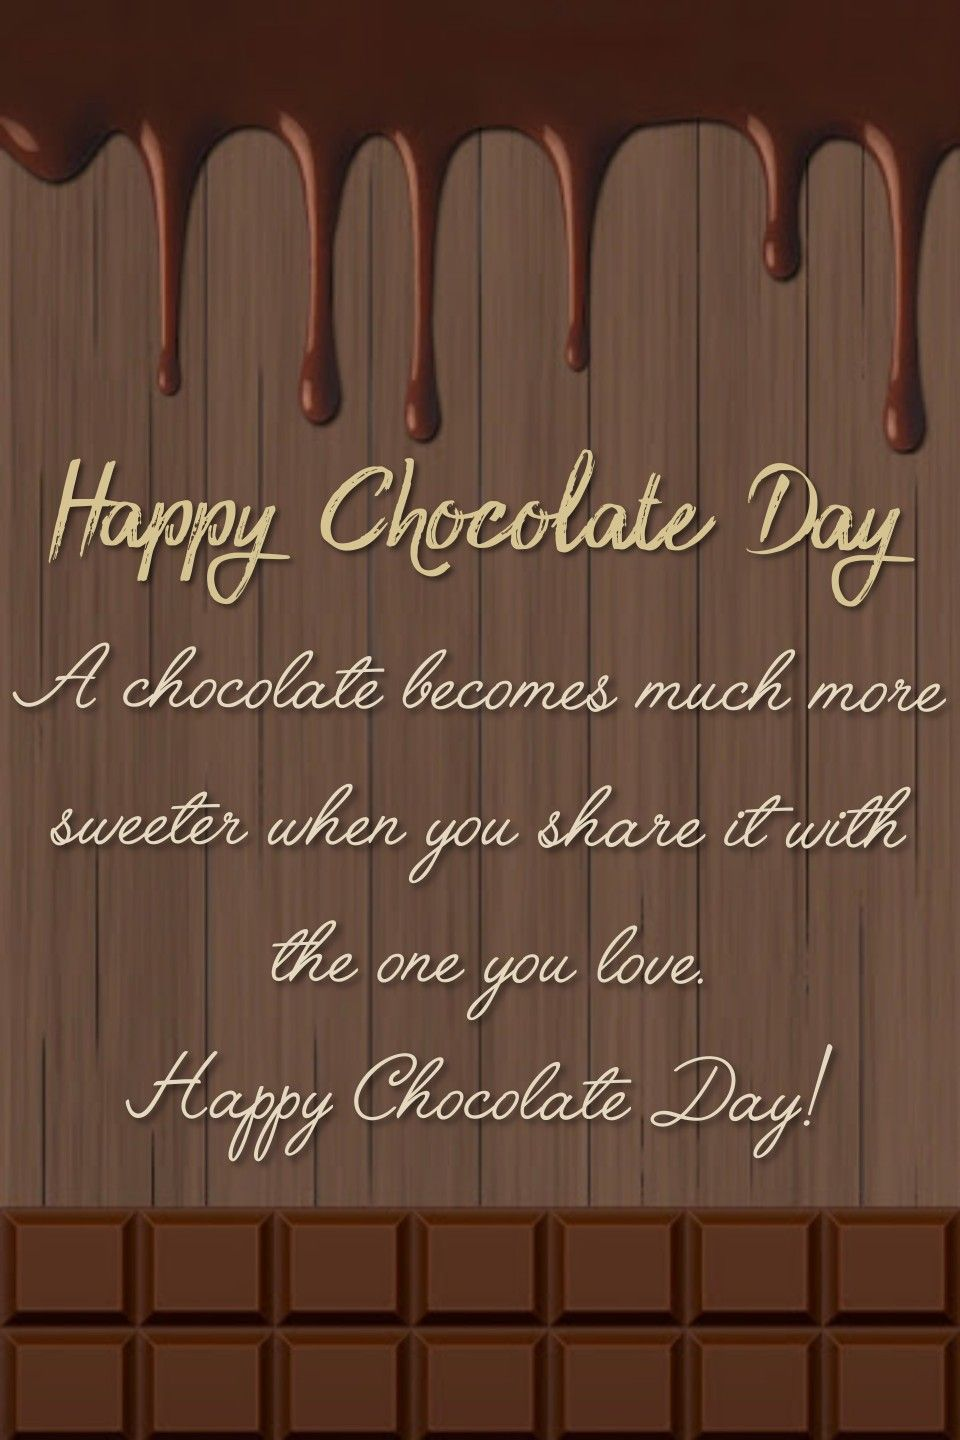 Chocolate Day Massages And Wishes In 2021 Chocolate Day Happy Valentines Day Images Valentines Day Poems Happy chocolate day 2021 quotes for